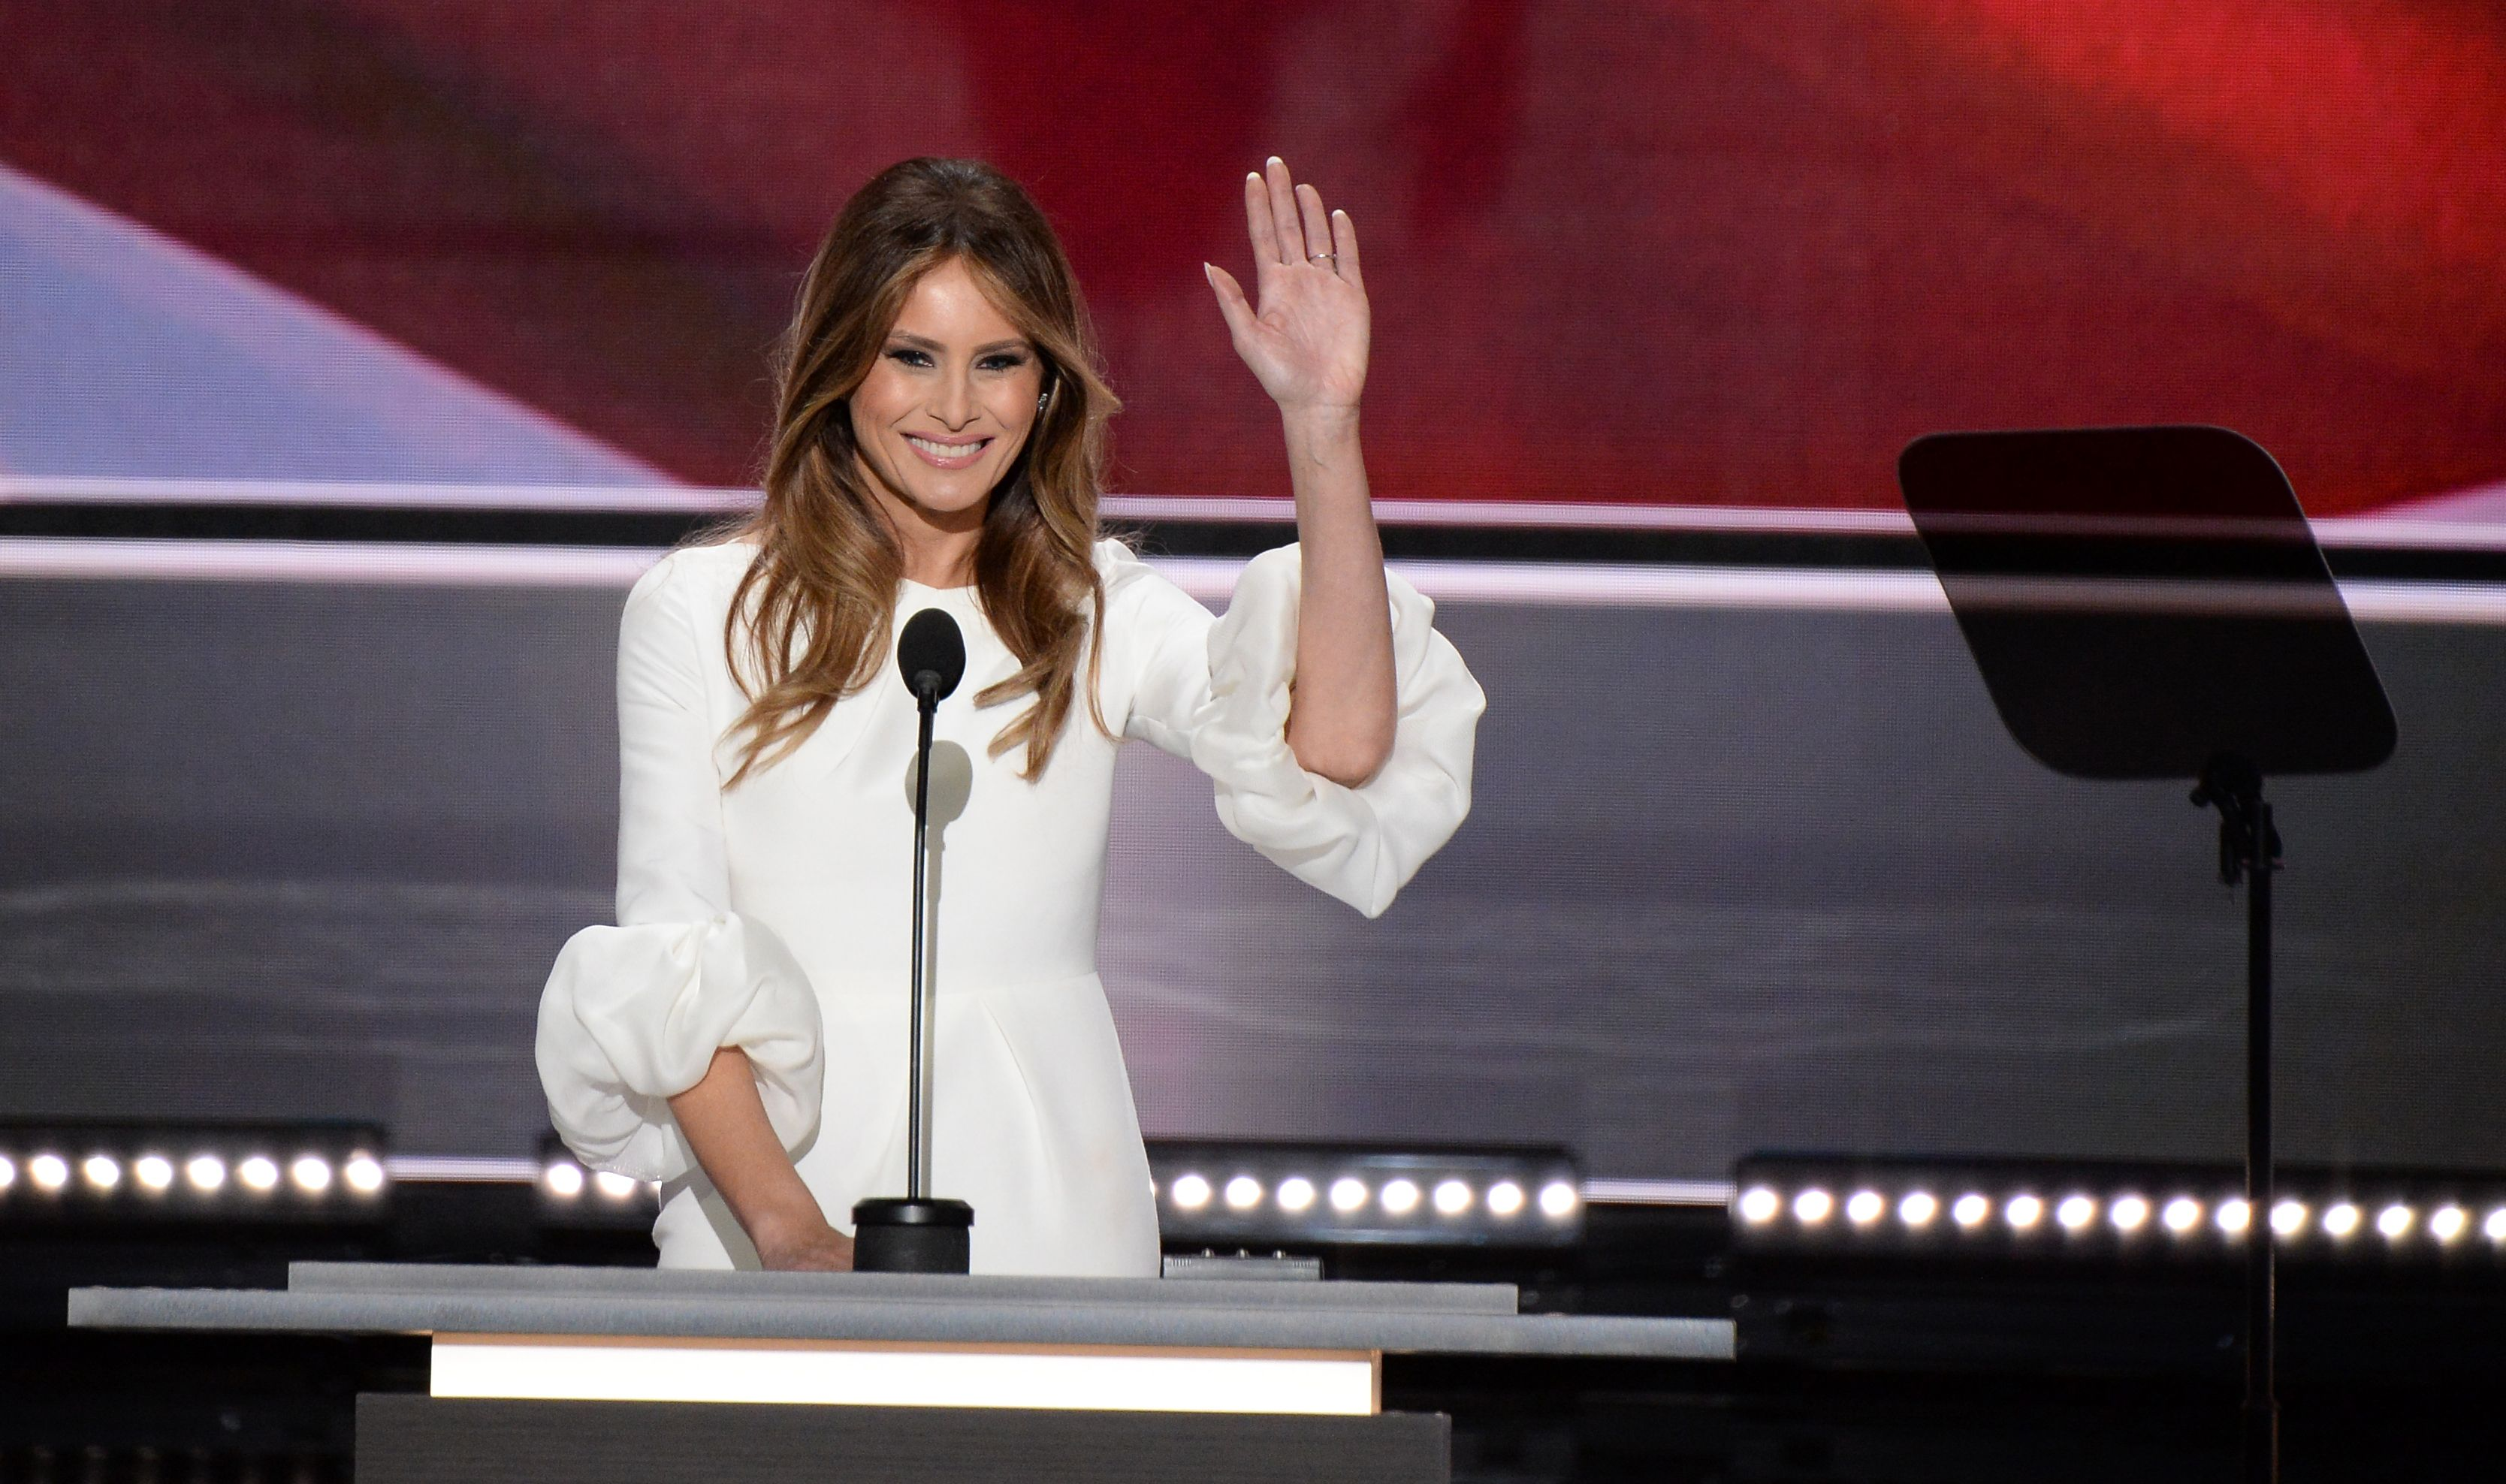 Melania Trump, wife of Republican presidential nominee Donald Trump, addresses delegates on the first day of the Republican National Convention on July 18, 2016, at Quicken Loans Arena in Cleveland.